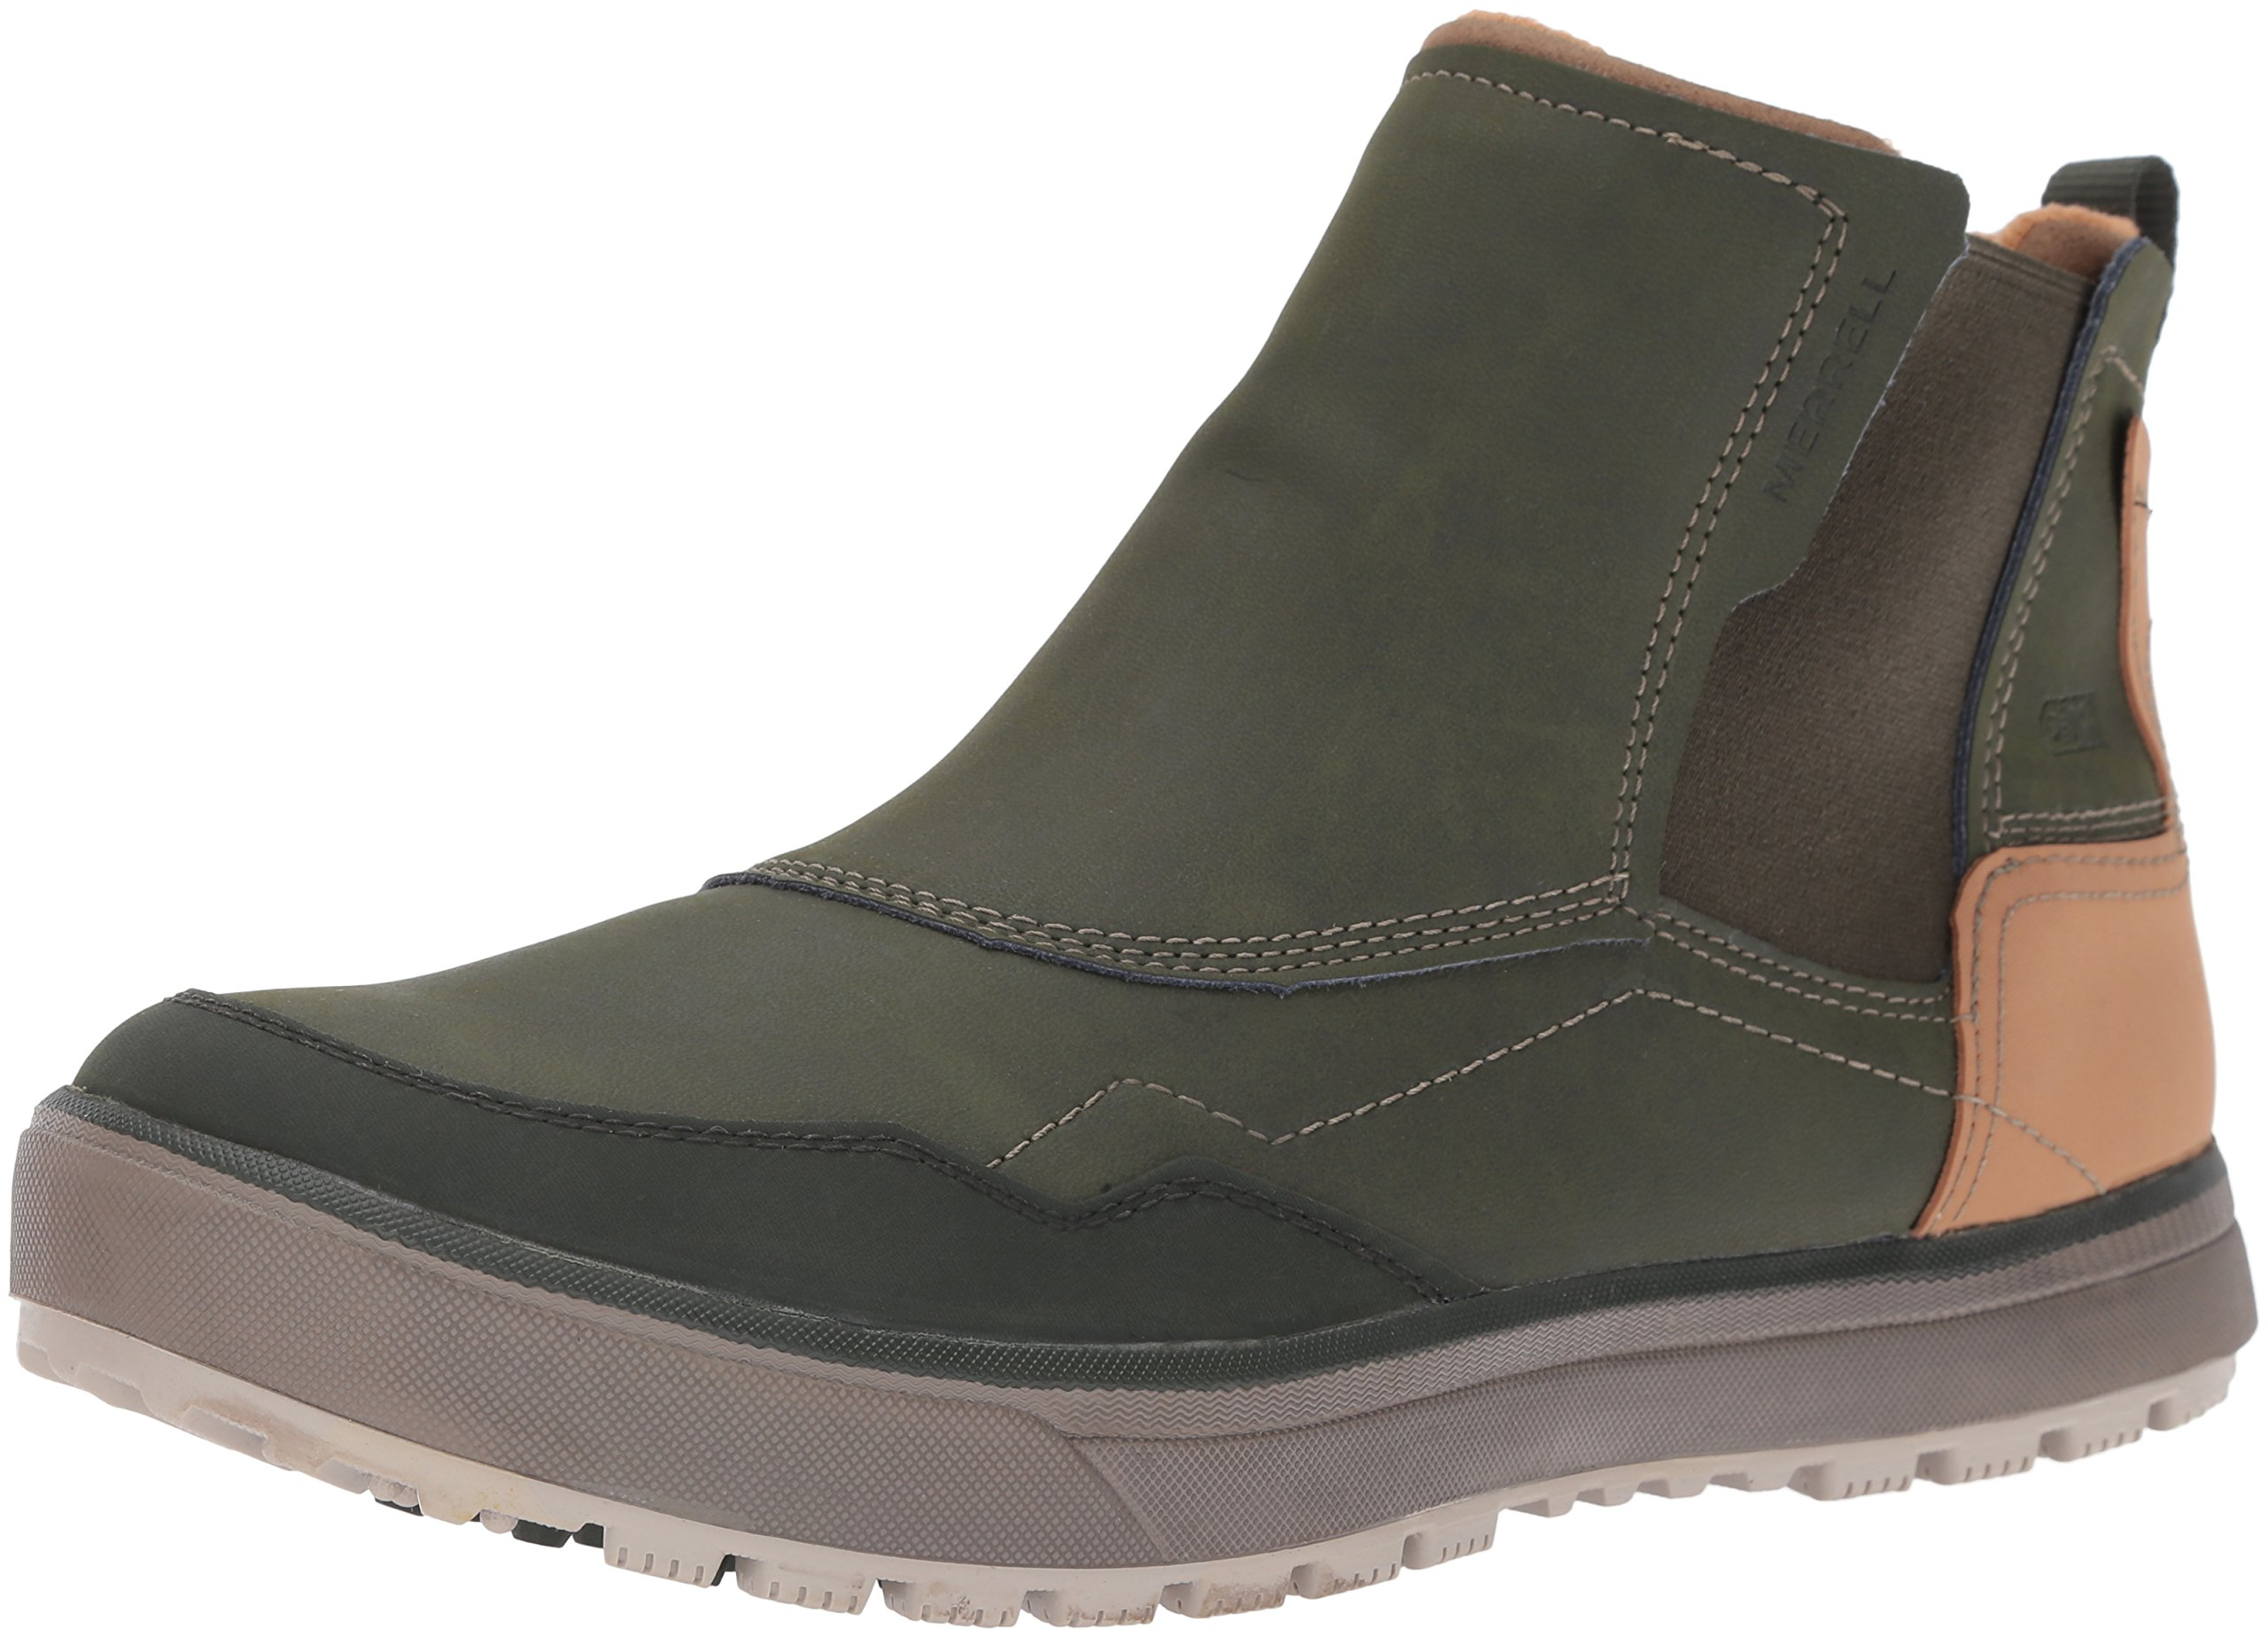 Merrell Men's Turku Chelsea Waterproof Winter Boot, Rosin, 9.5 M US